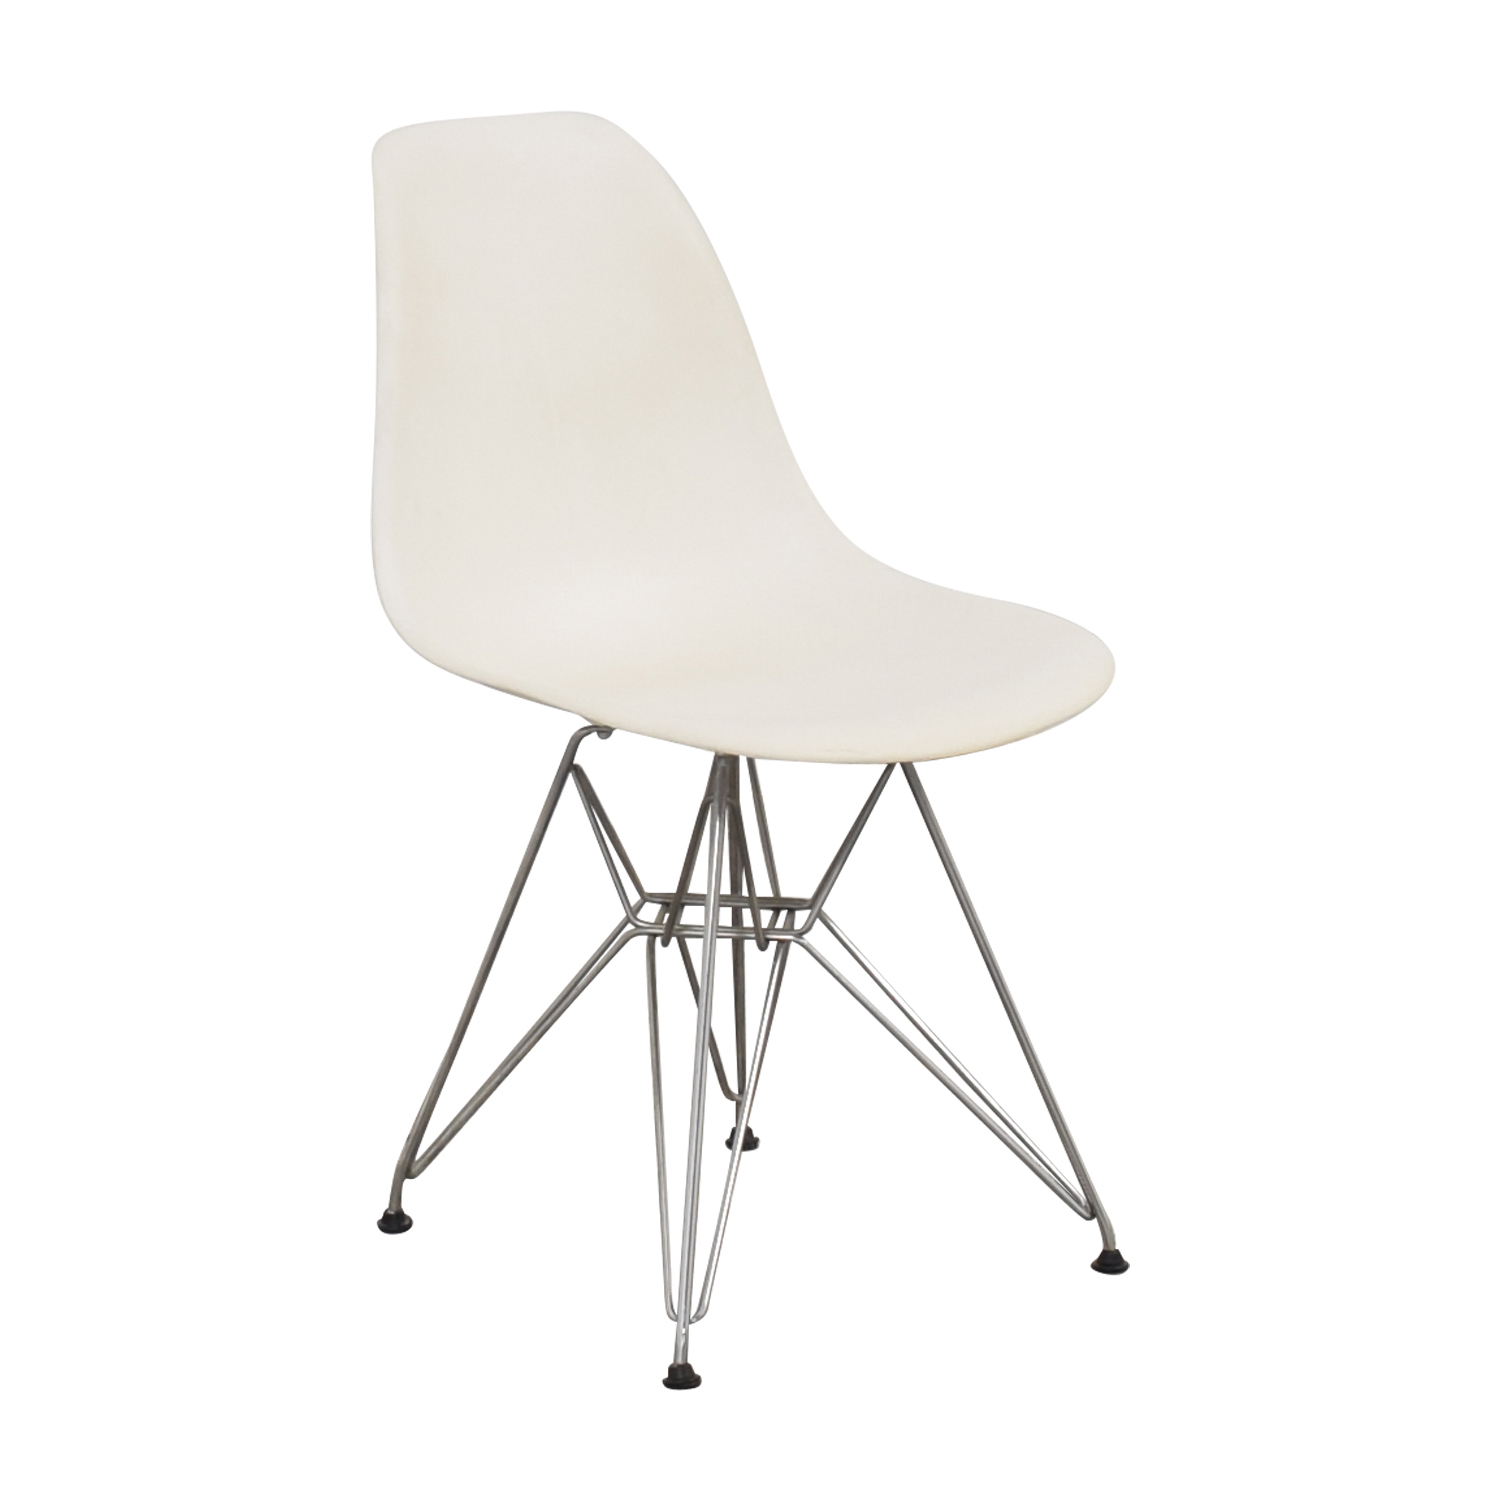 Herman Miller Herman Miller Eames Molded Plastic Dining Chair with Wire Base for sale